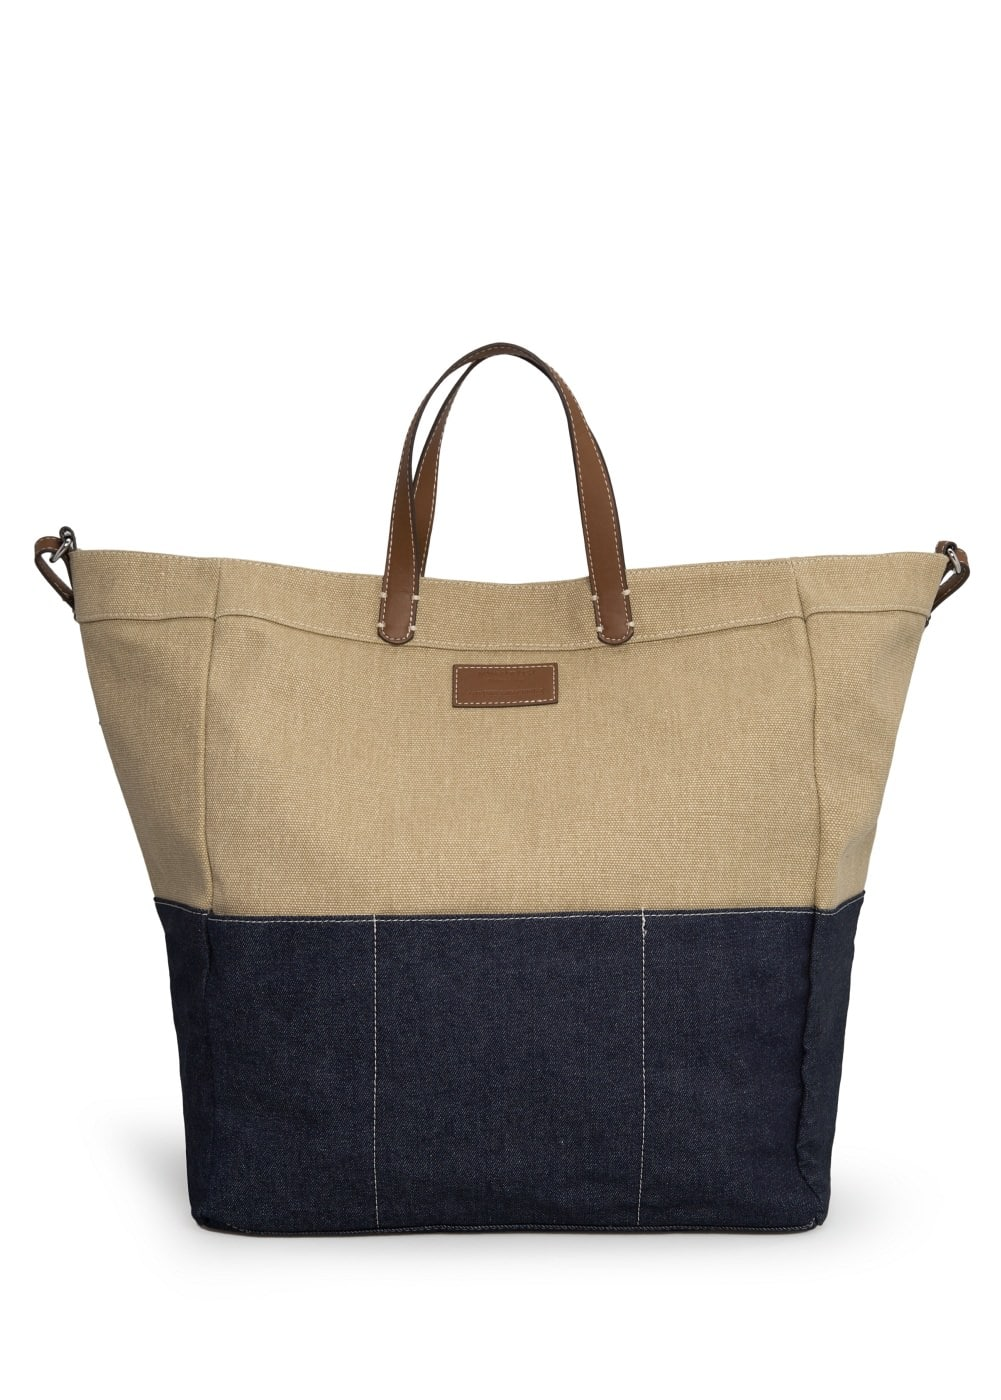 Mixed tote bag